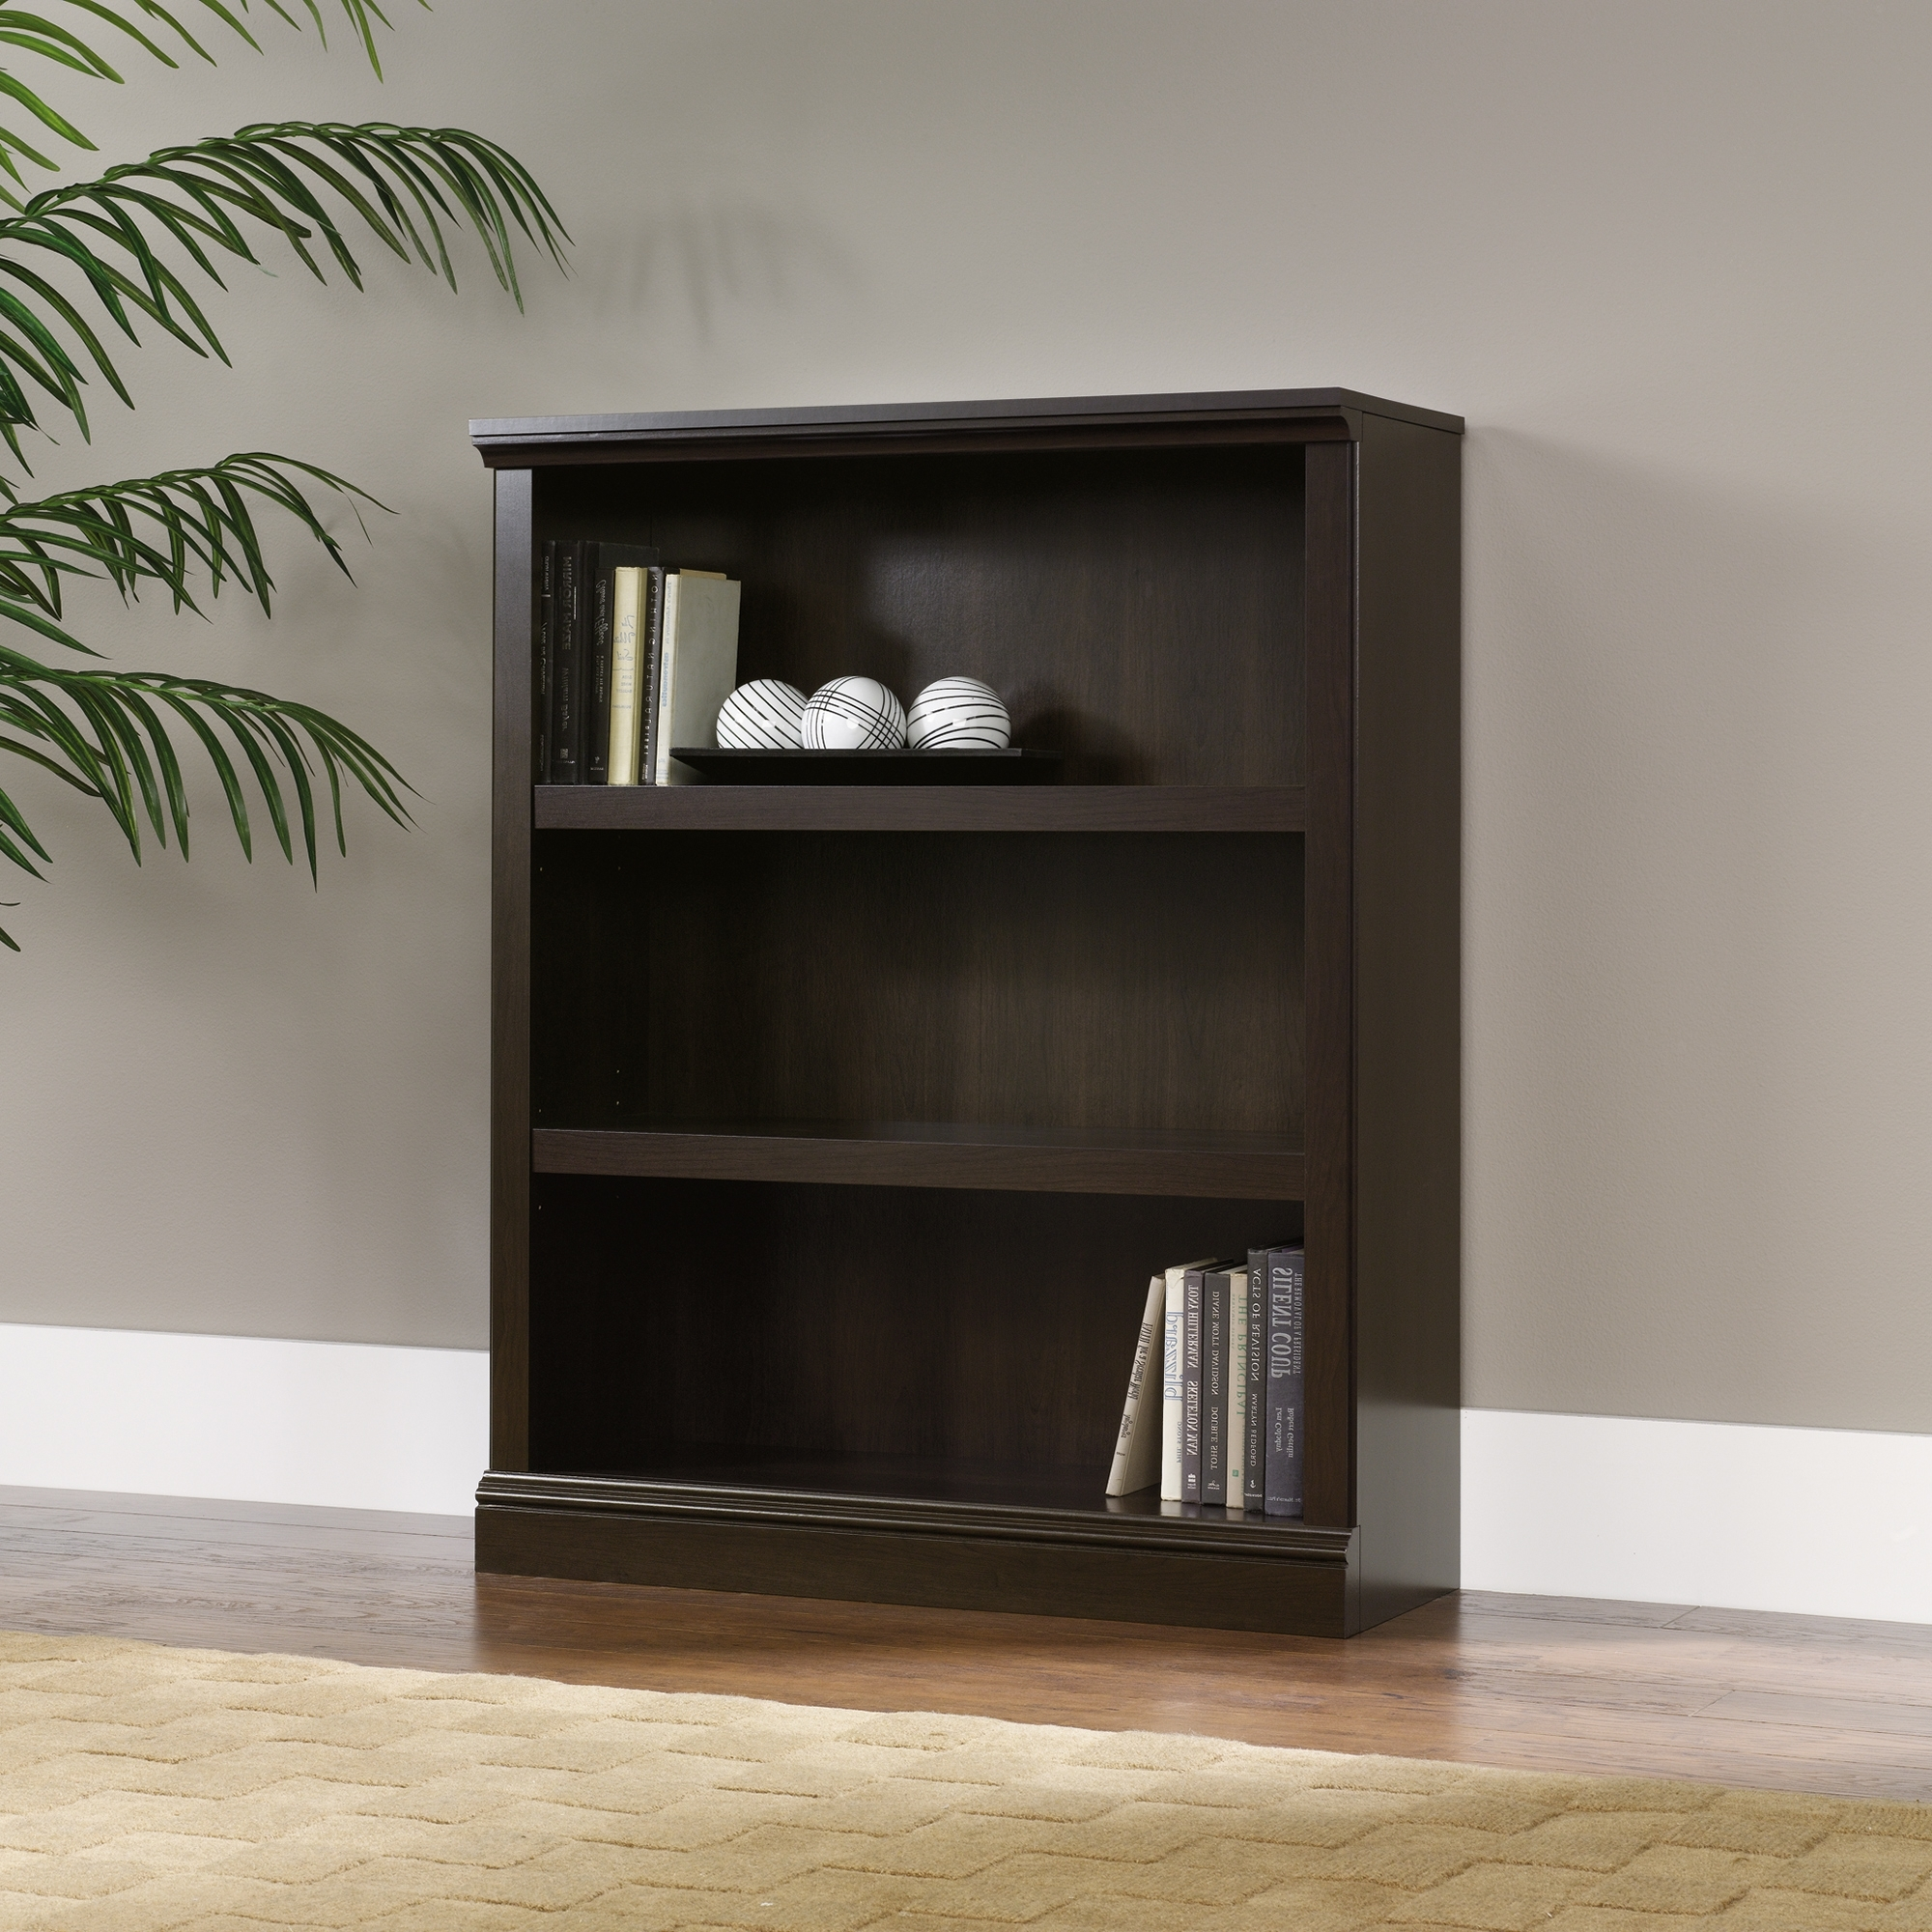 Trendy 3 Shelf Bookcases Regarding Metal Barrister Bookcase Plus Element Tall Narrow 5 Shelf Also (View 8 of 15)